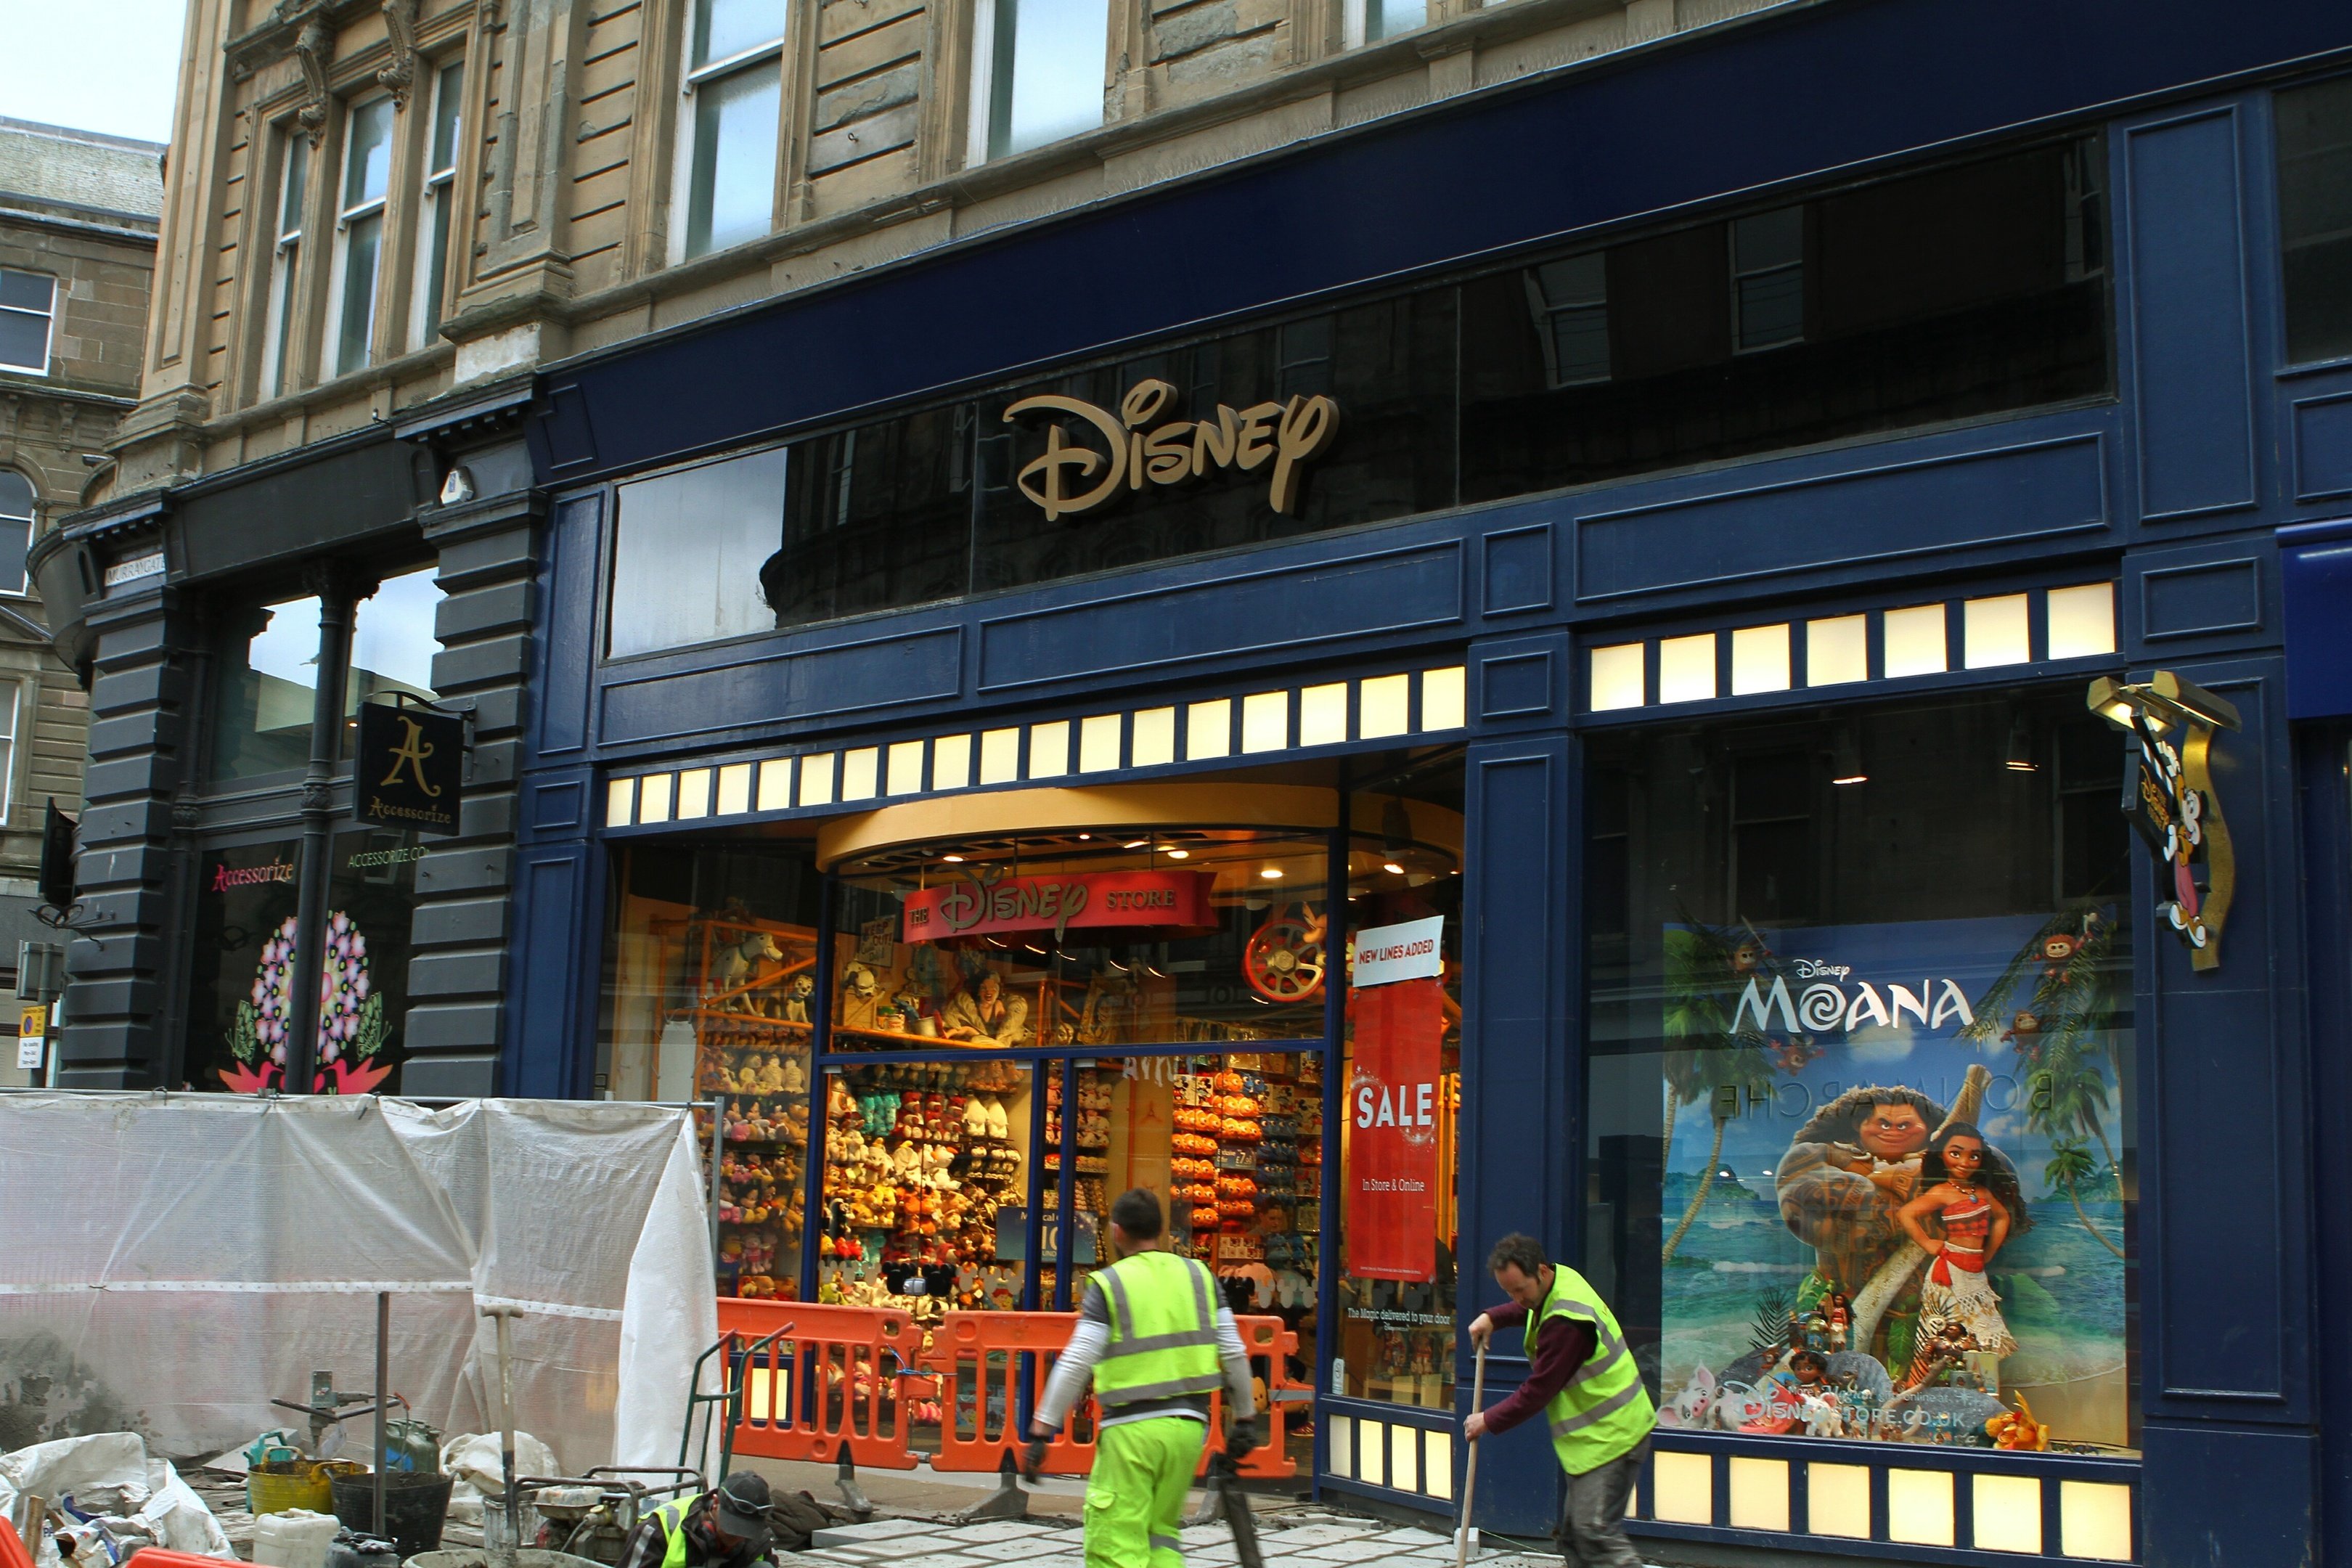 The Disney Store in Murraygate is to close